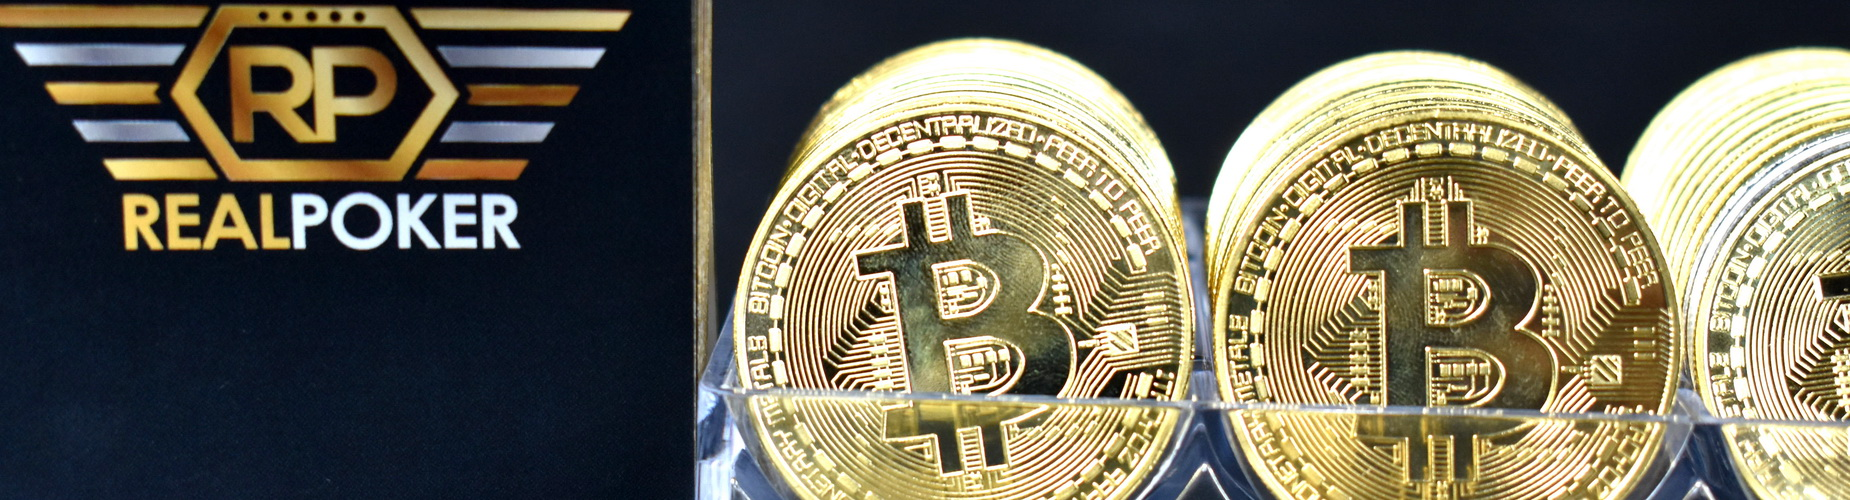 Chip conversion changes to match Bitcoin price movement